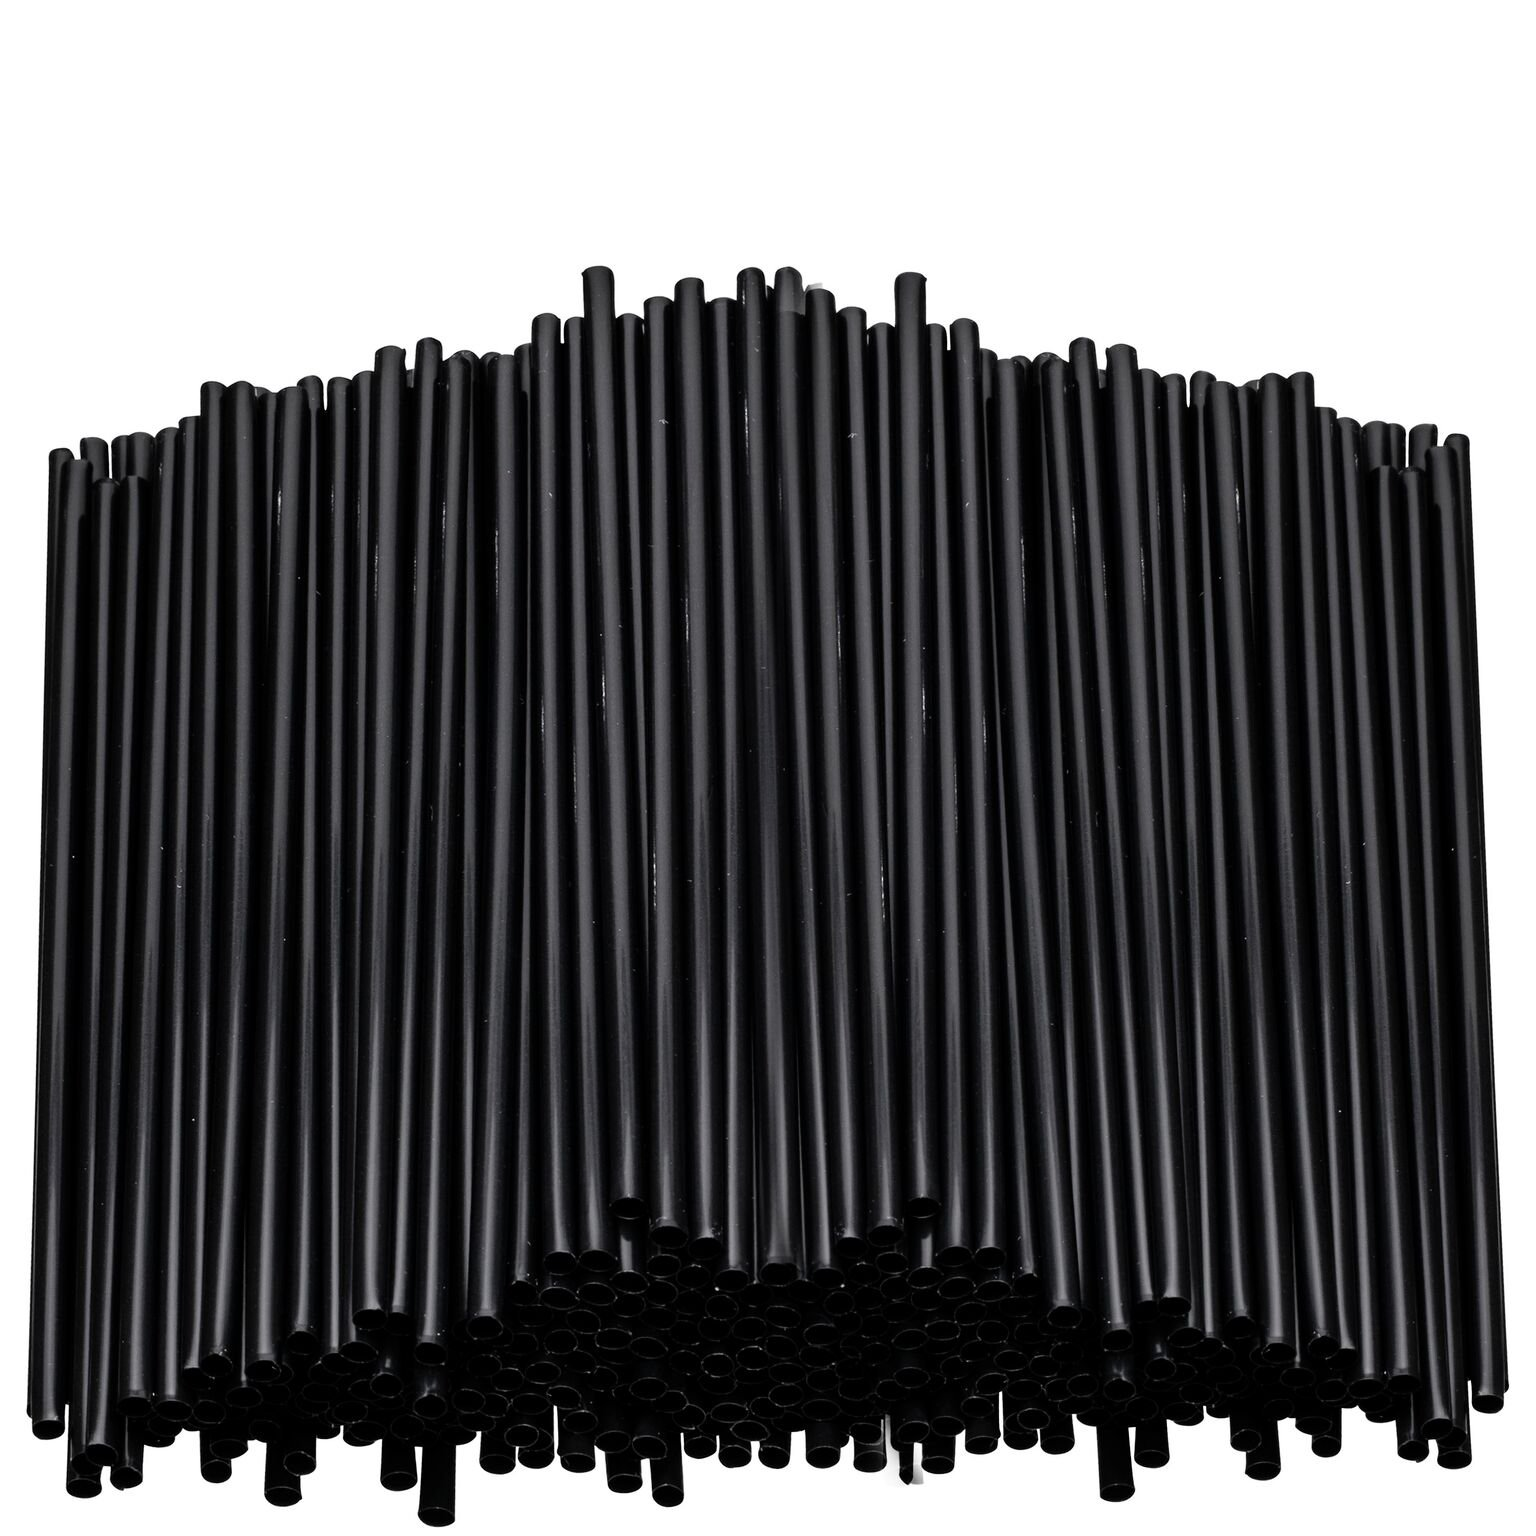 Black Plastic Stirring Straws - Coffee Cocktail Sipping Stirrers - Drink Stir Sticks For Bars Cafes Restaurants Home Use (2000, 7.5 Inches) by eDayDeal (Image #1)